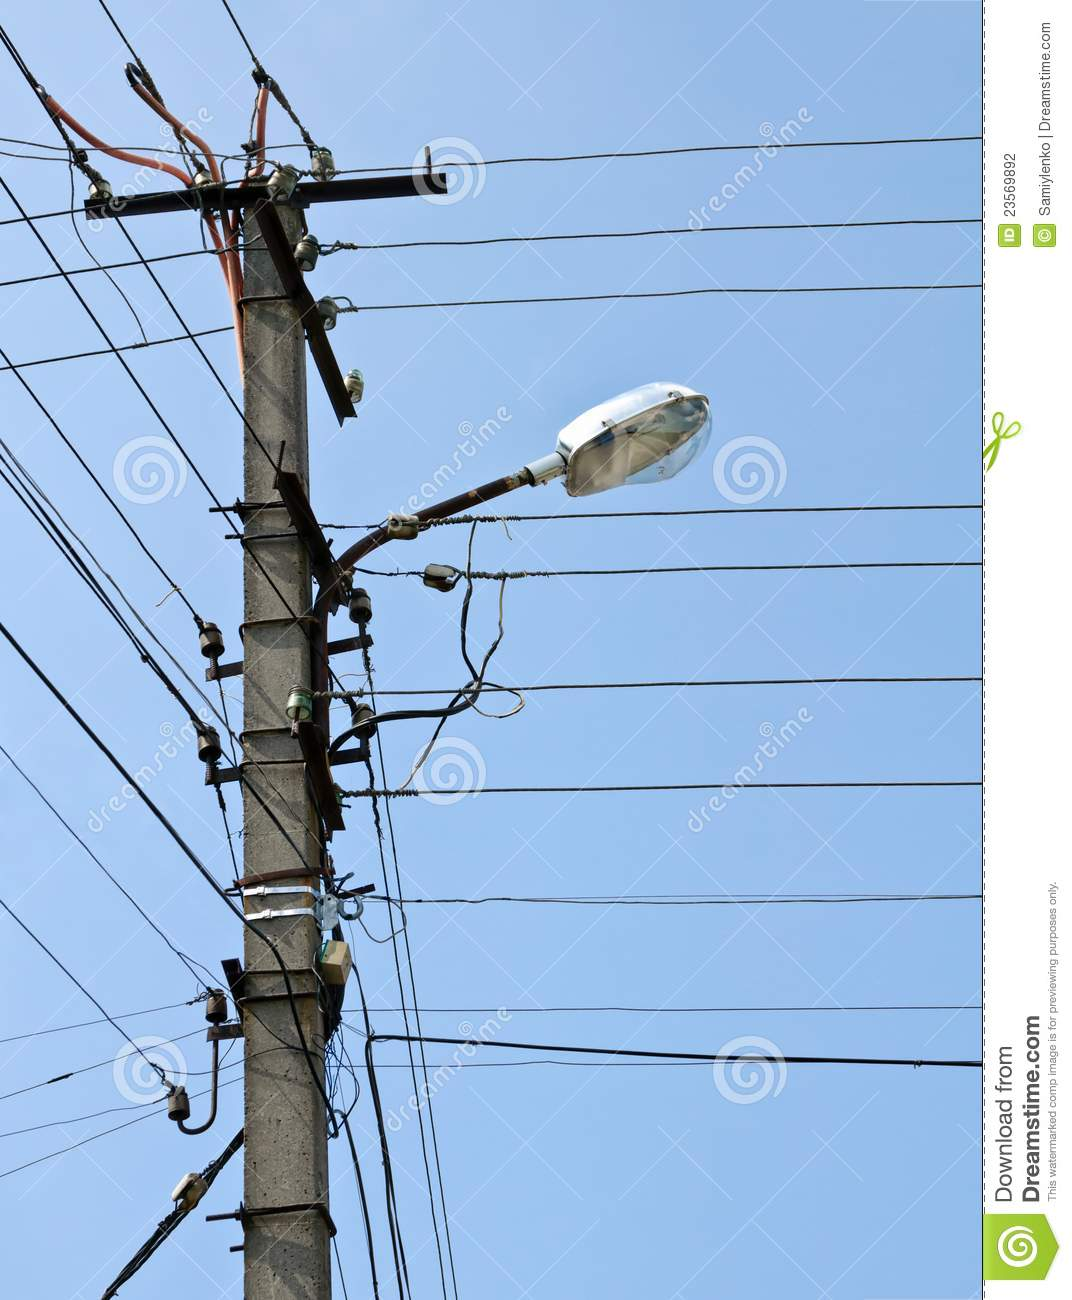 Light Pole Terminology: Pole With Electrical Lines And Street Light Stock Photo